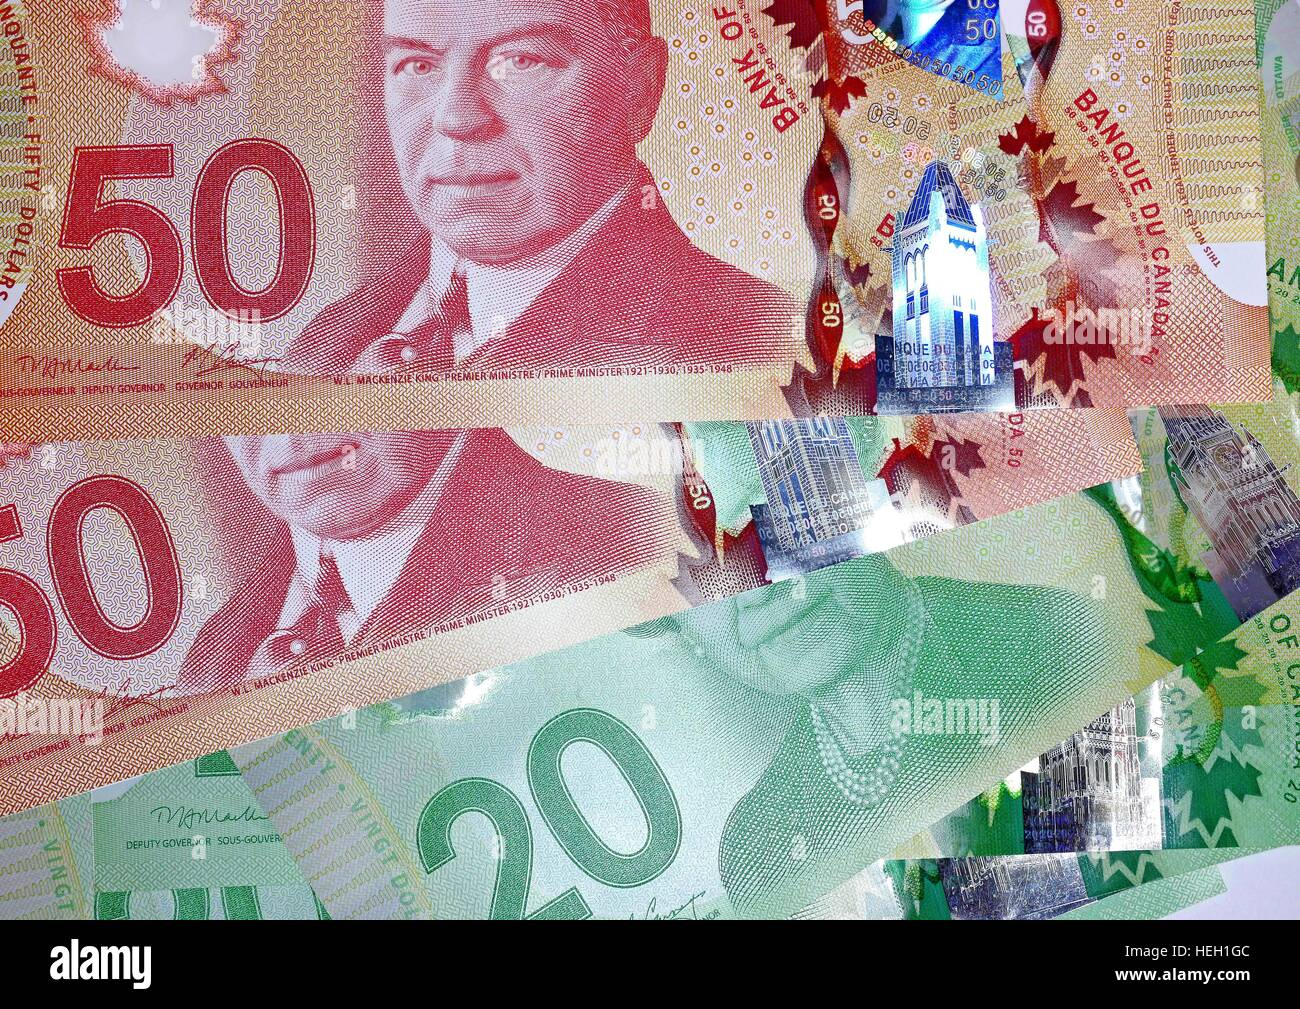 The Bank of Canada issued new high tech polymer money with holograms that will last longer and be harder to counterfeit. Stock Photo